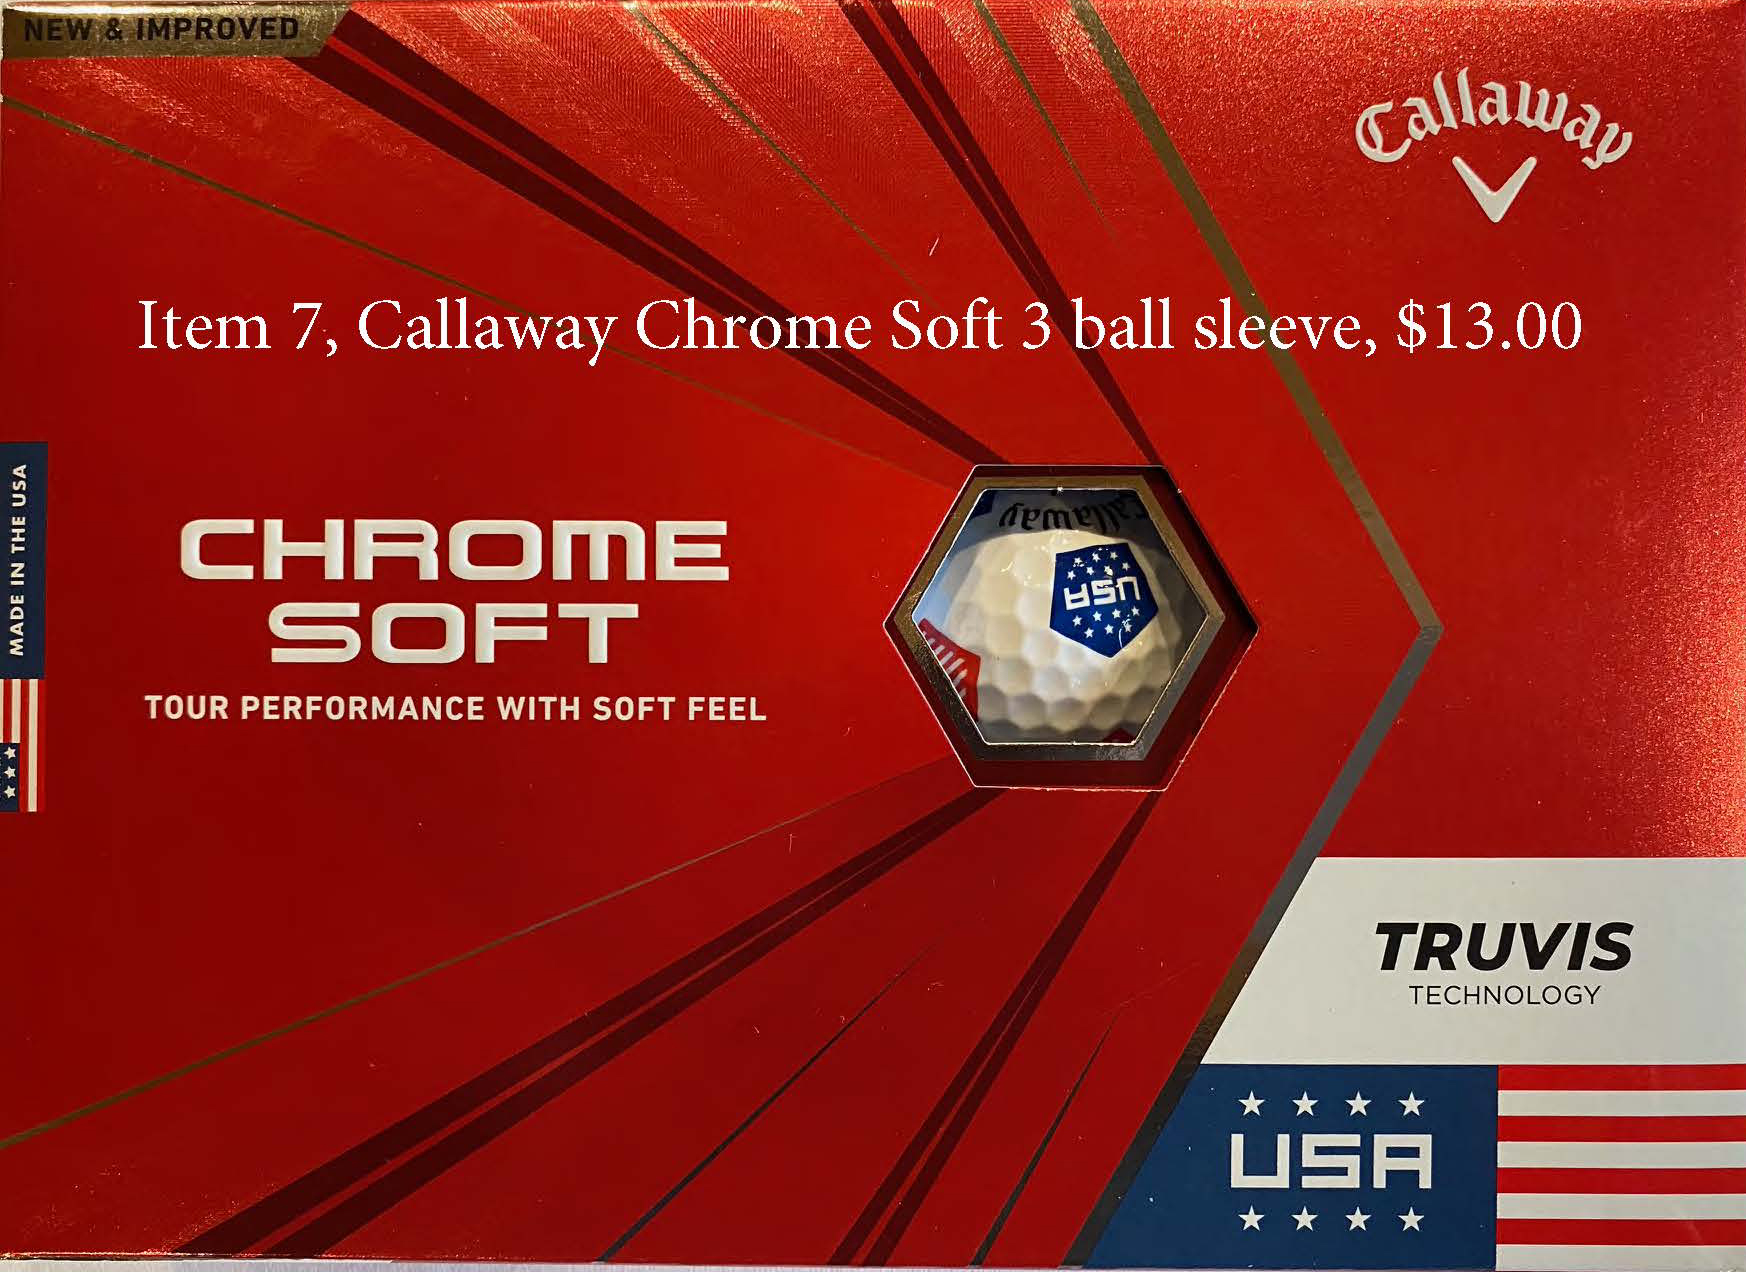 Item_7_Callaway_Chrome_soft_3_ball_sleeve_13.00.jpg